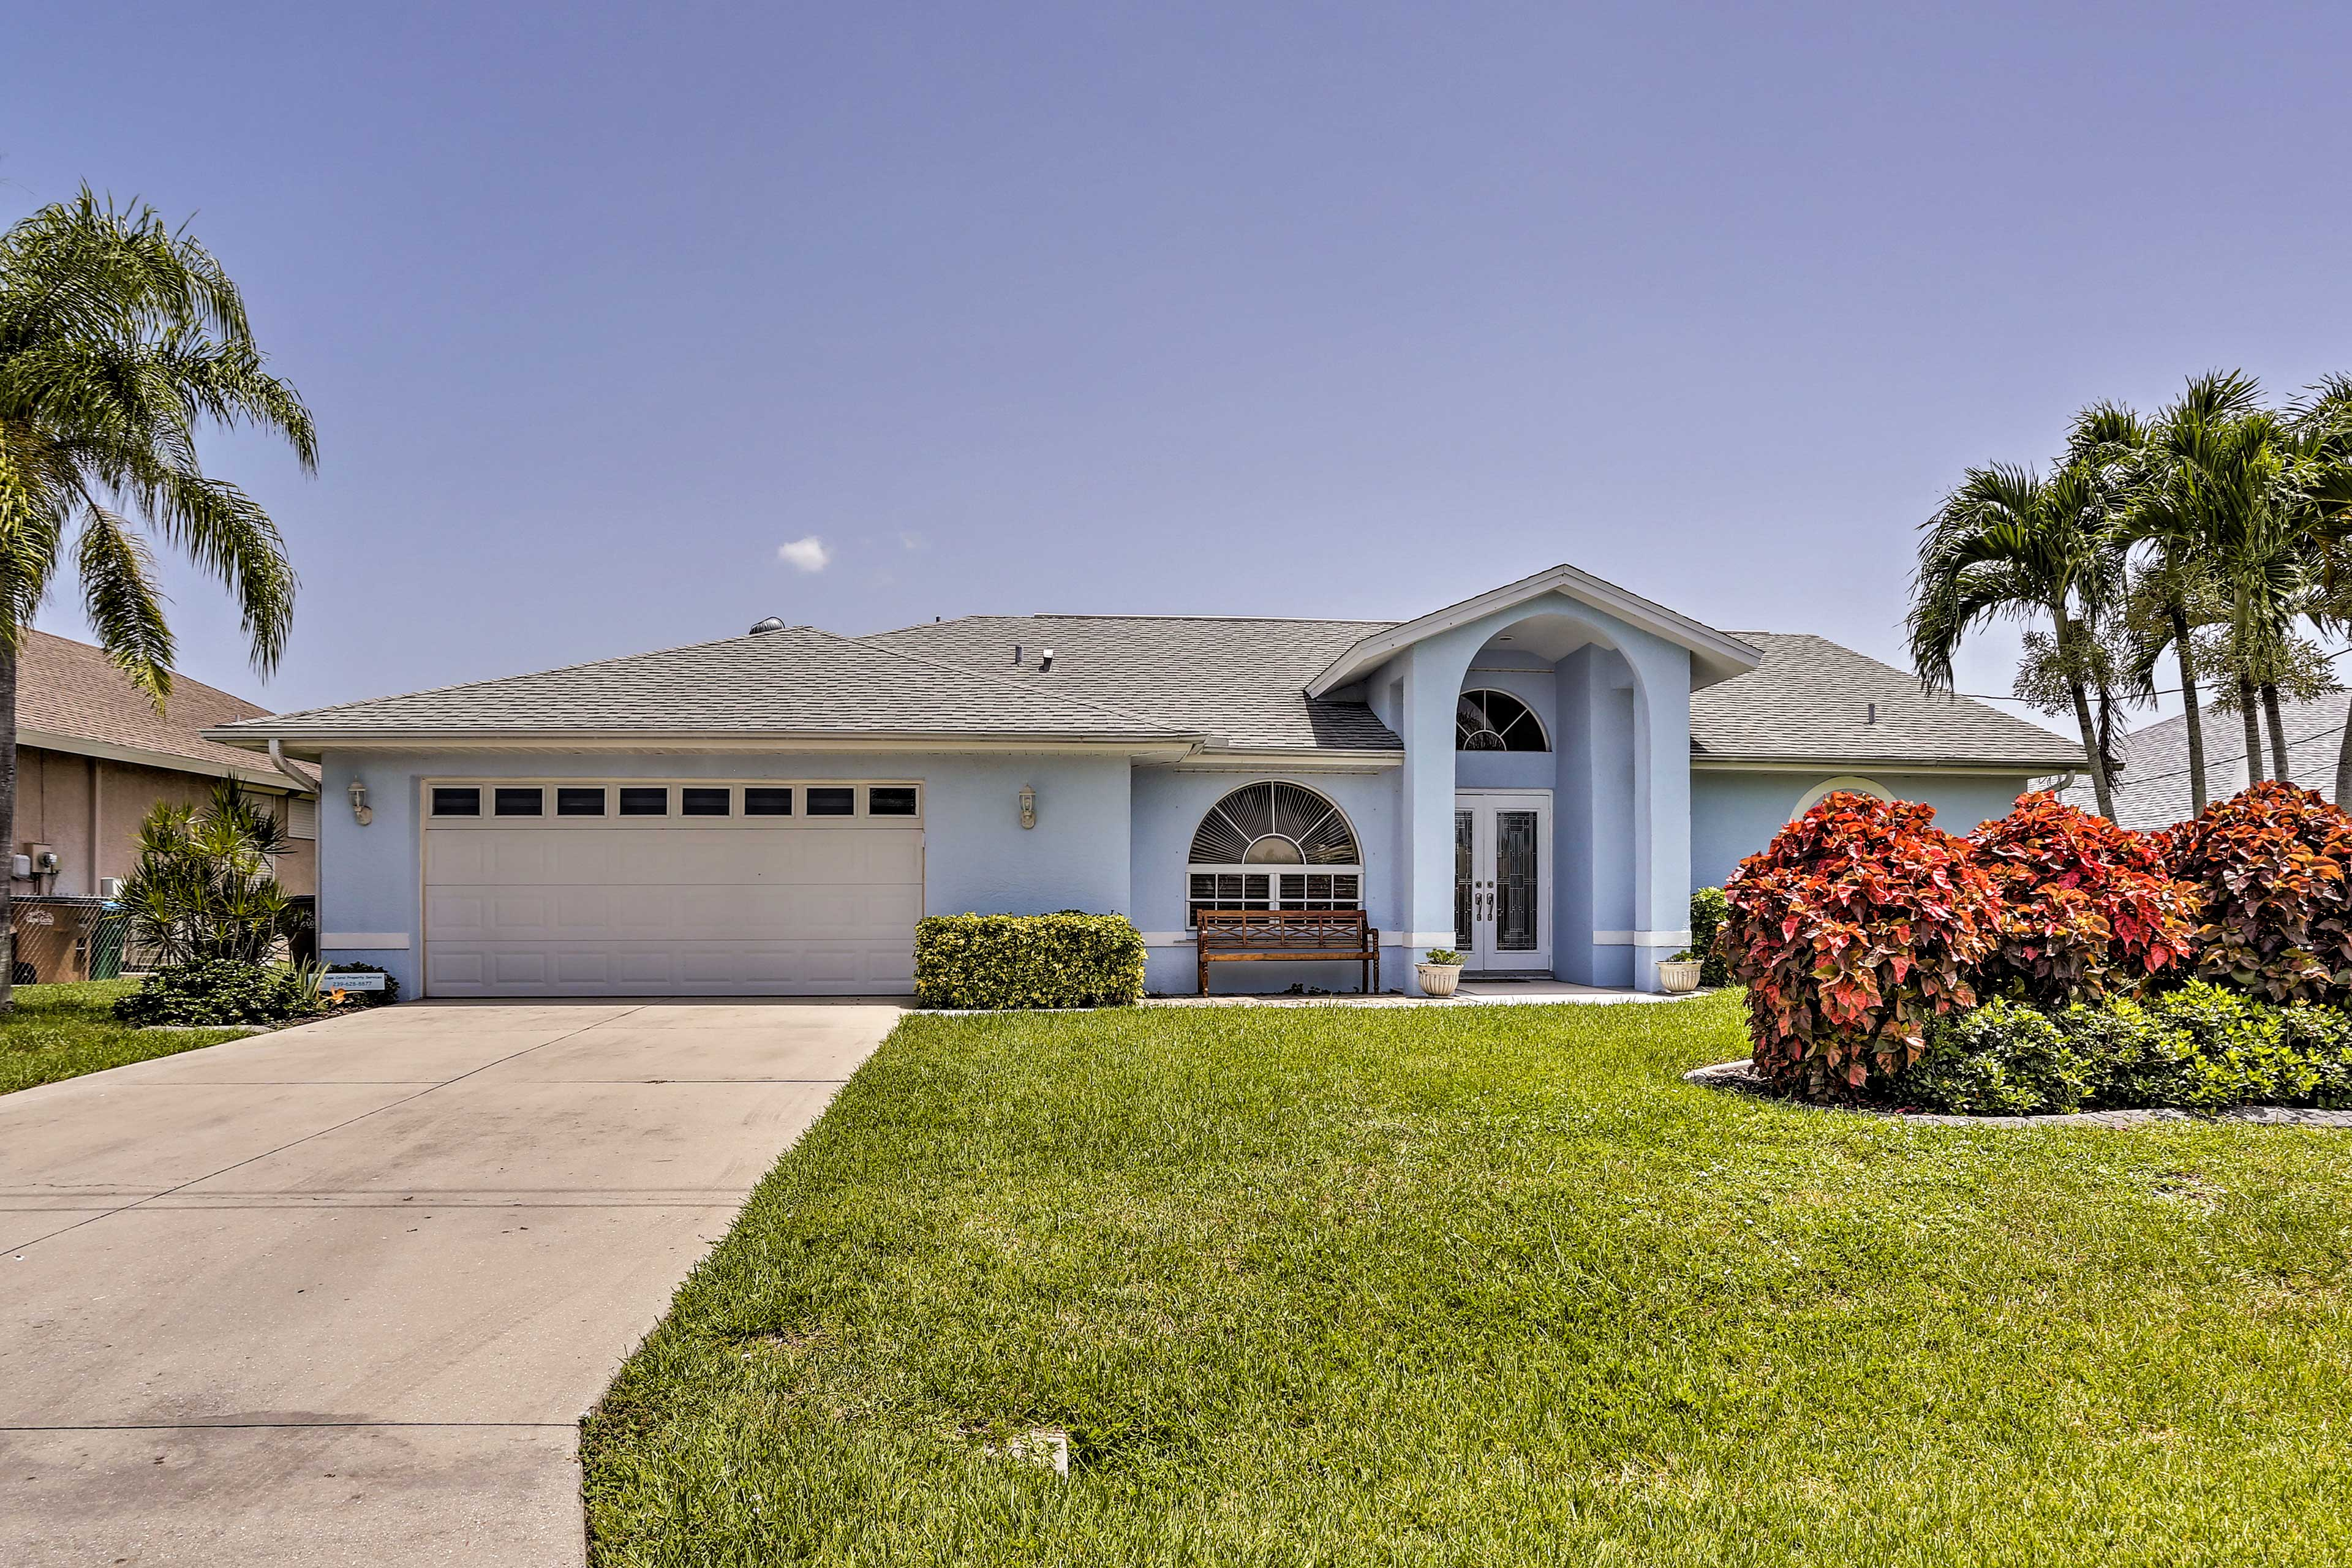 Park 2 cars in the garage and 4 more in the driveway of this Cape Coral home.